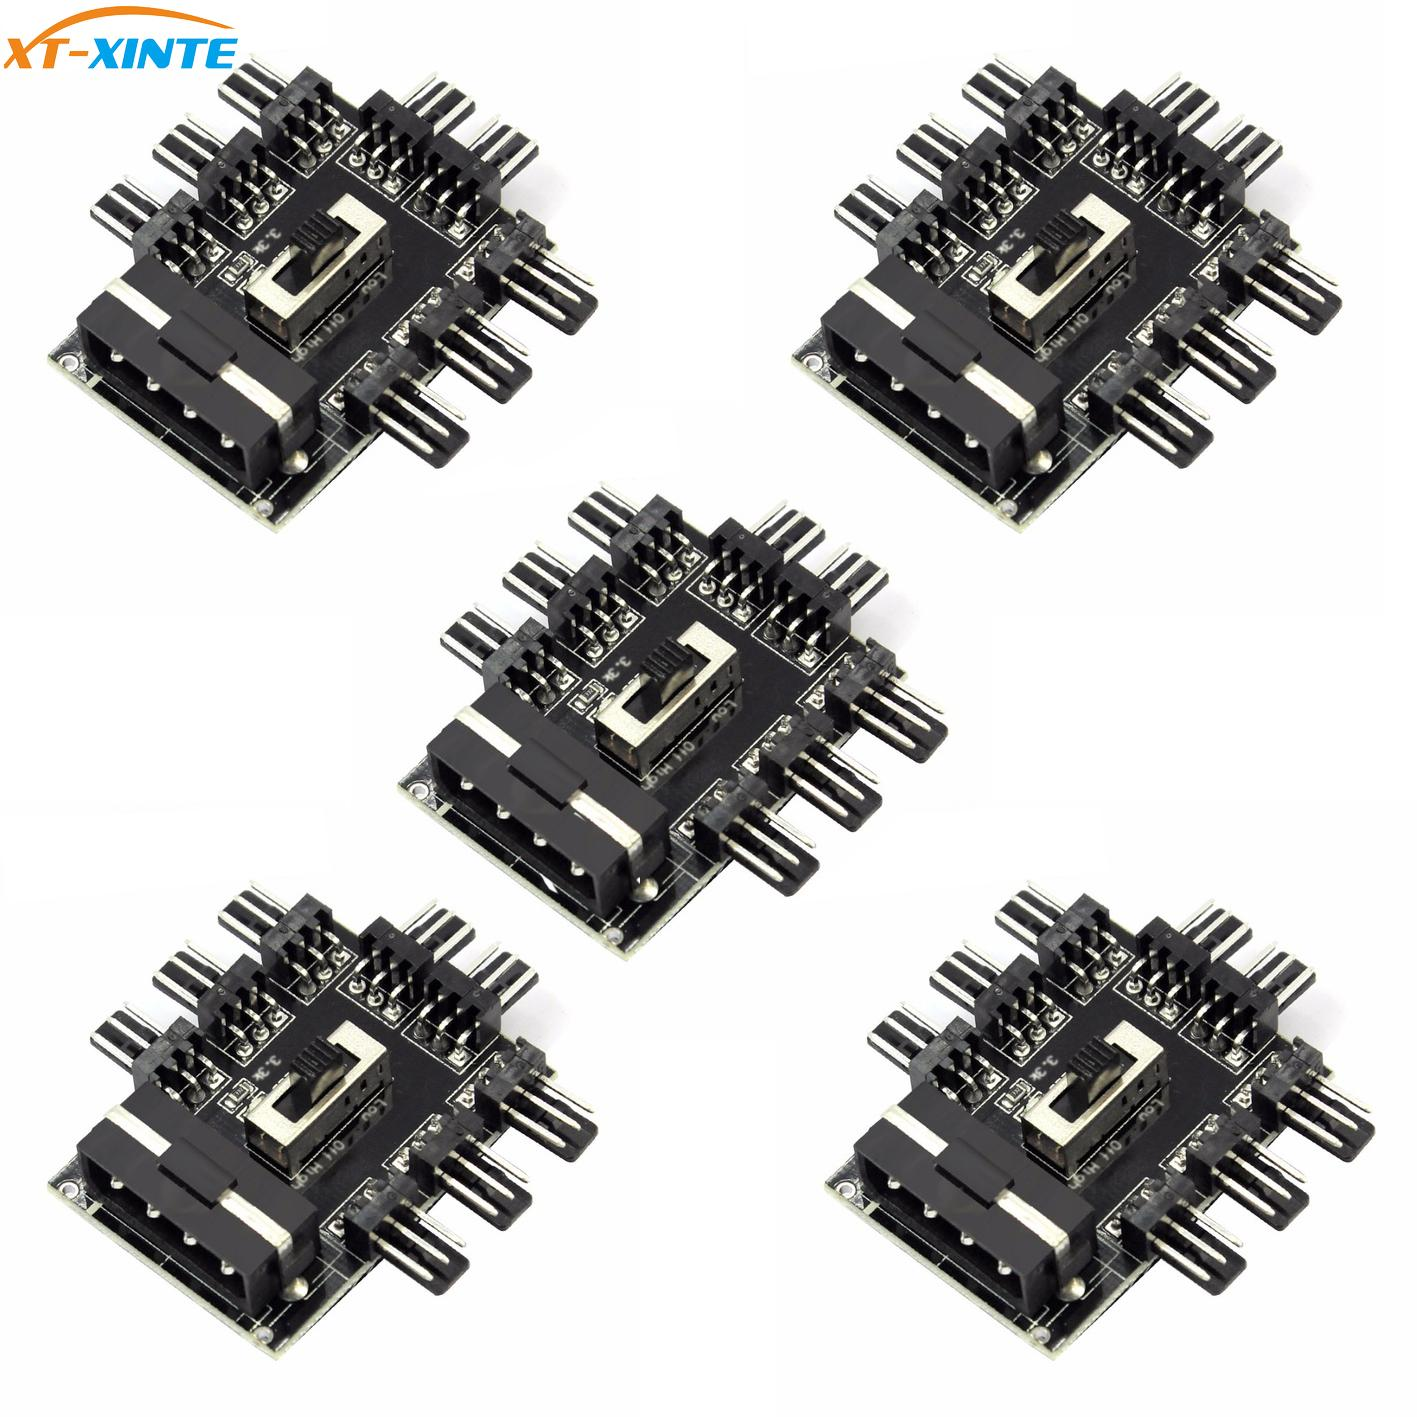 5pcs Computer Cooling 1 to 8 <font><b>4Pin</b></font>/SATA Cooler Fan Hub <font><b>Splitter</b></font> Cable <font><b>PWM</b></font> 3Pin Power Supply Adapter 2 Level Speed Control image